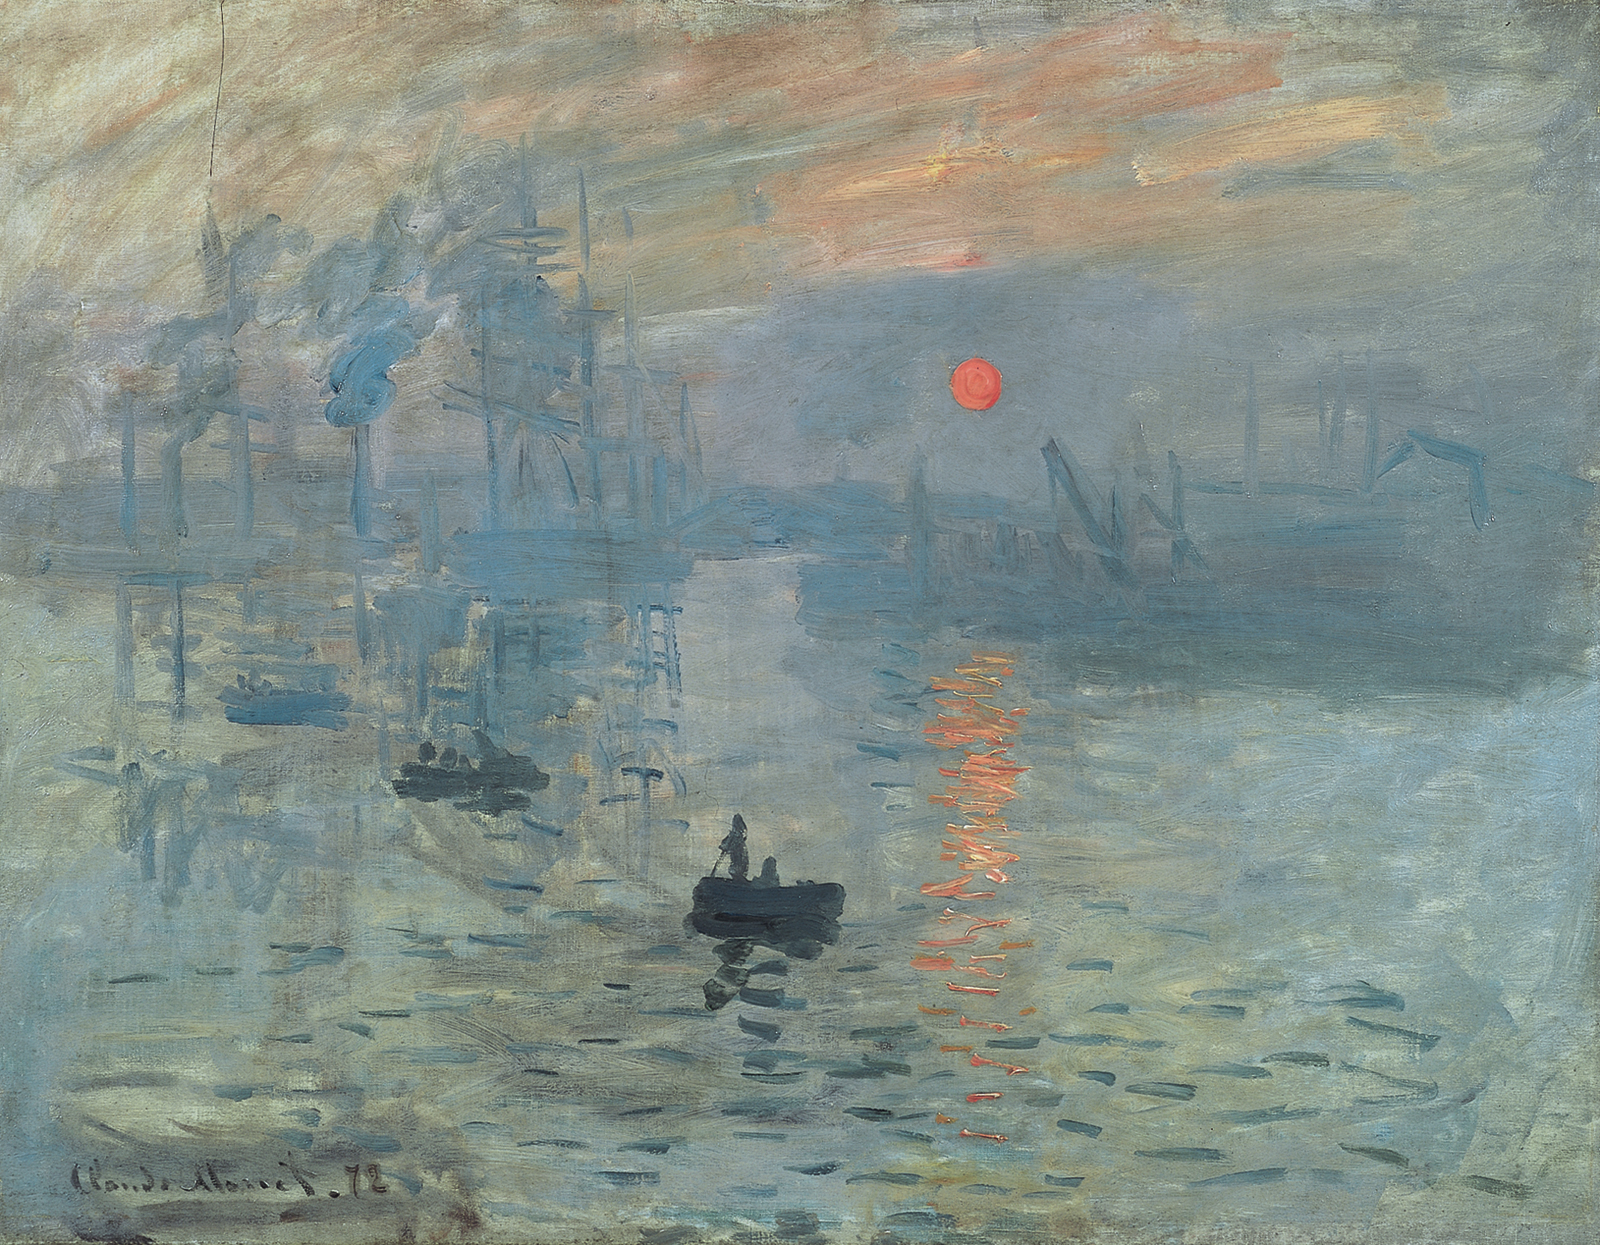 monet-impression-sunrise.jpg